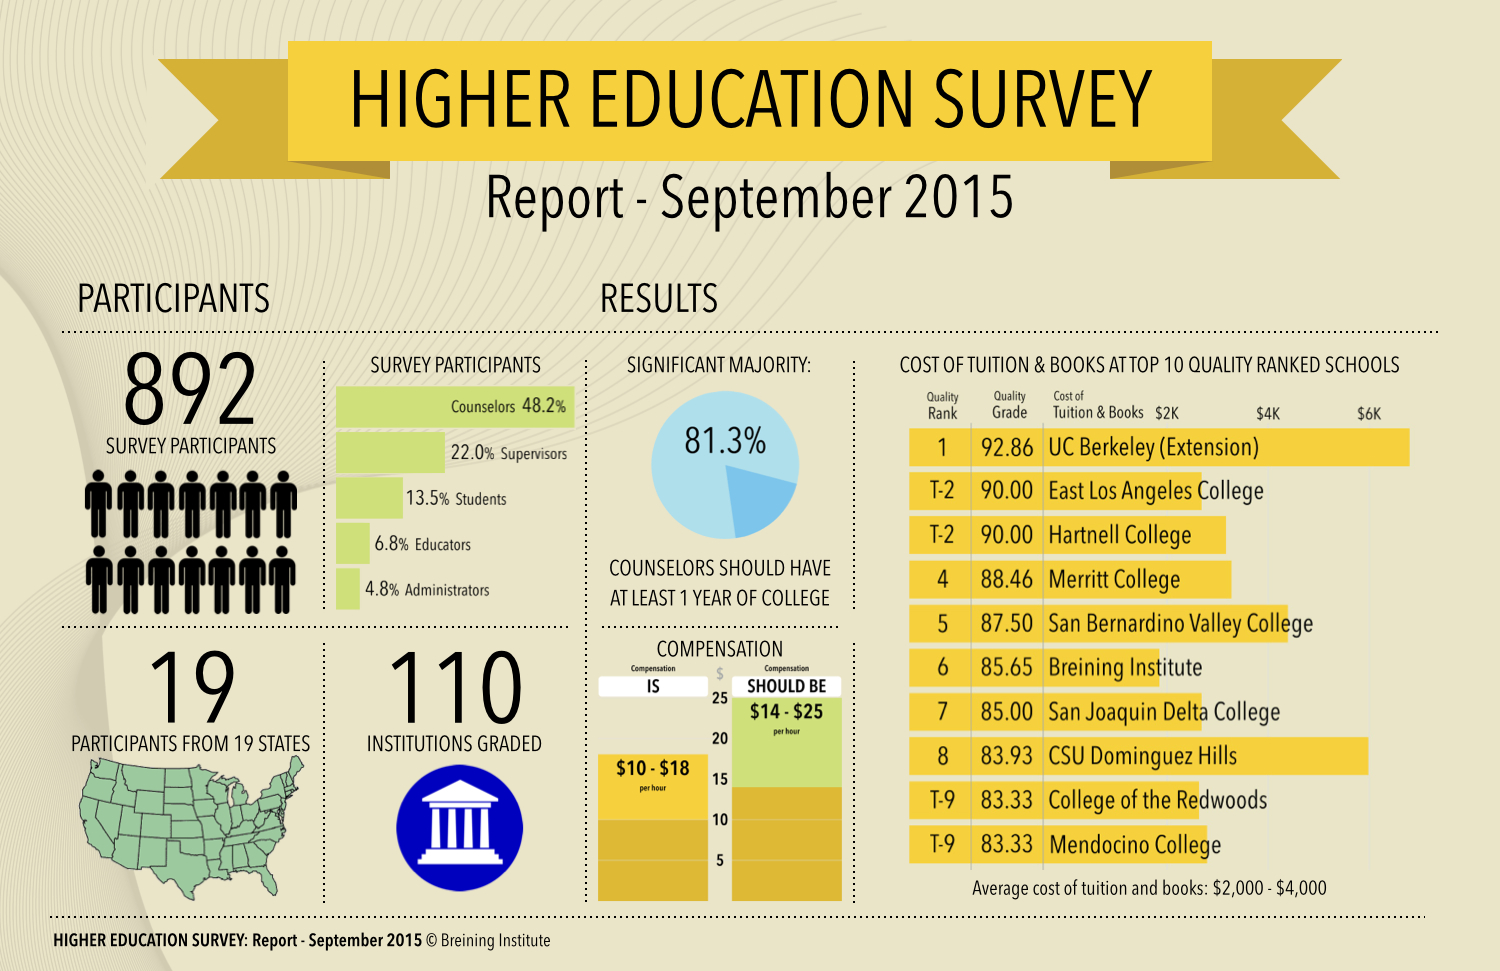 Higher Ed Report Sep 2015 INFOGRAPHIC 1509030949.001